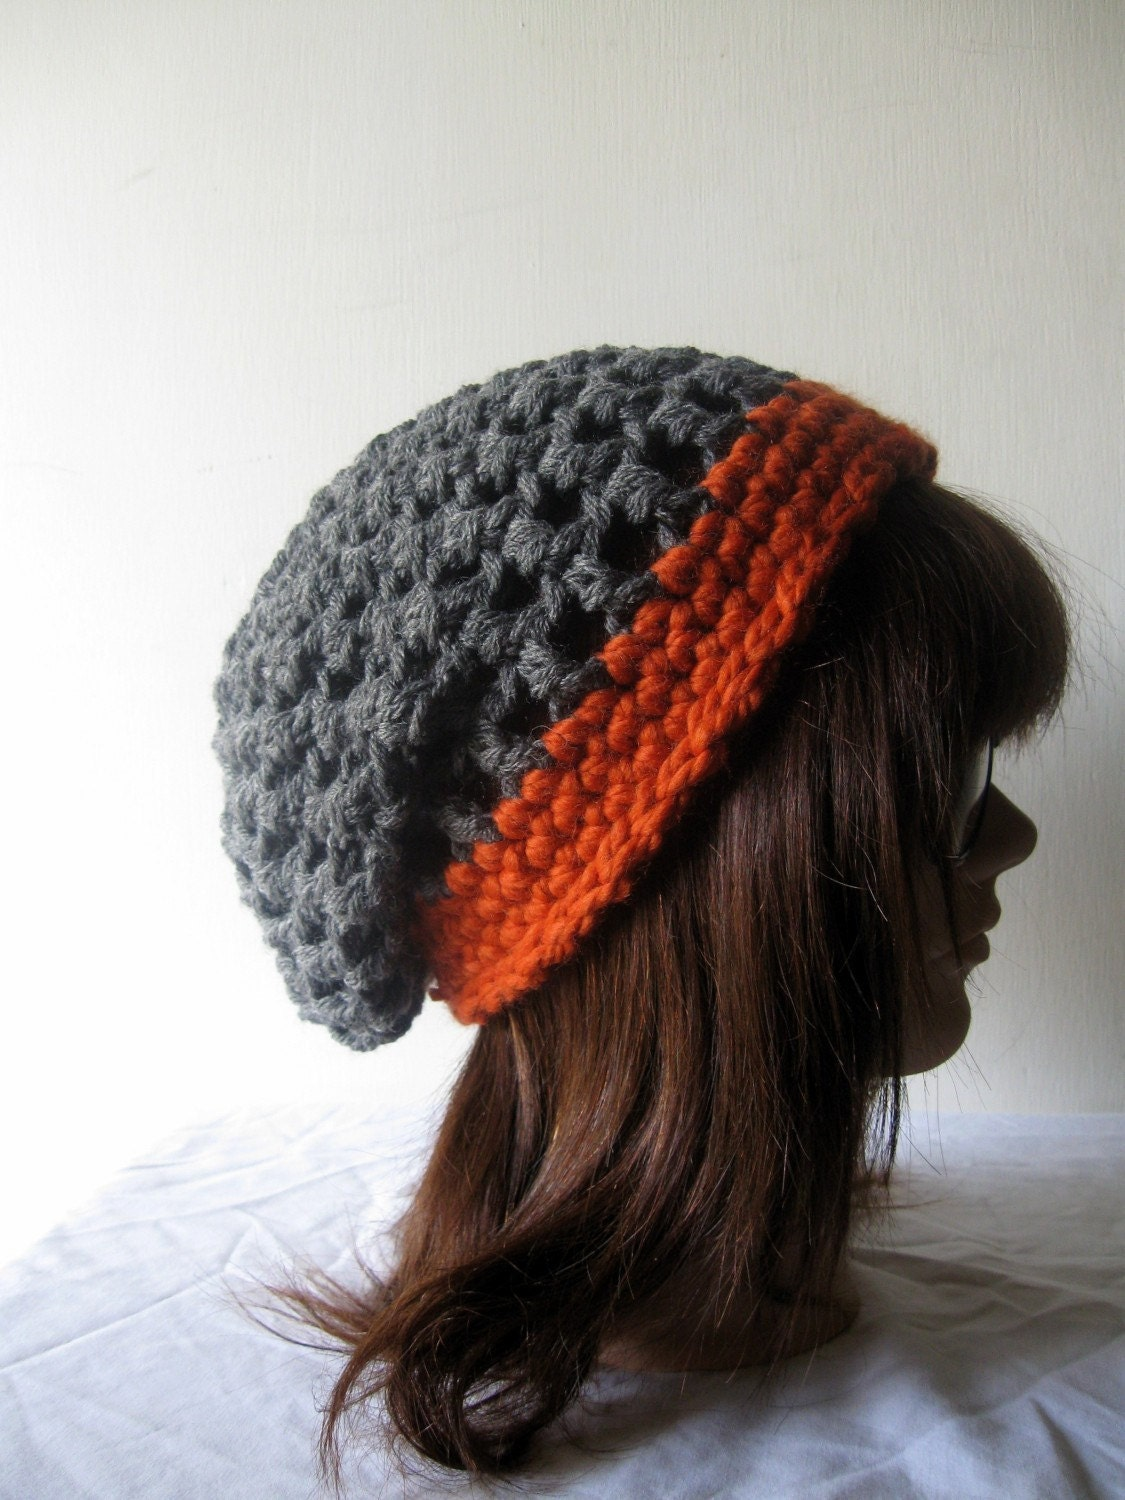 the slacker beanie hat in pumpkin and gray.